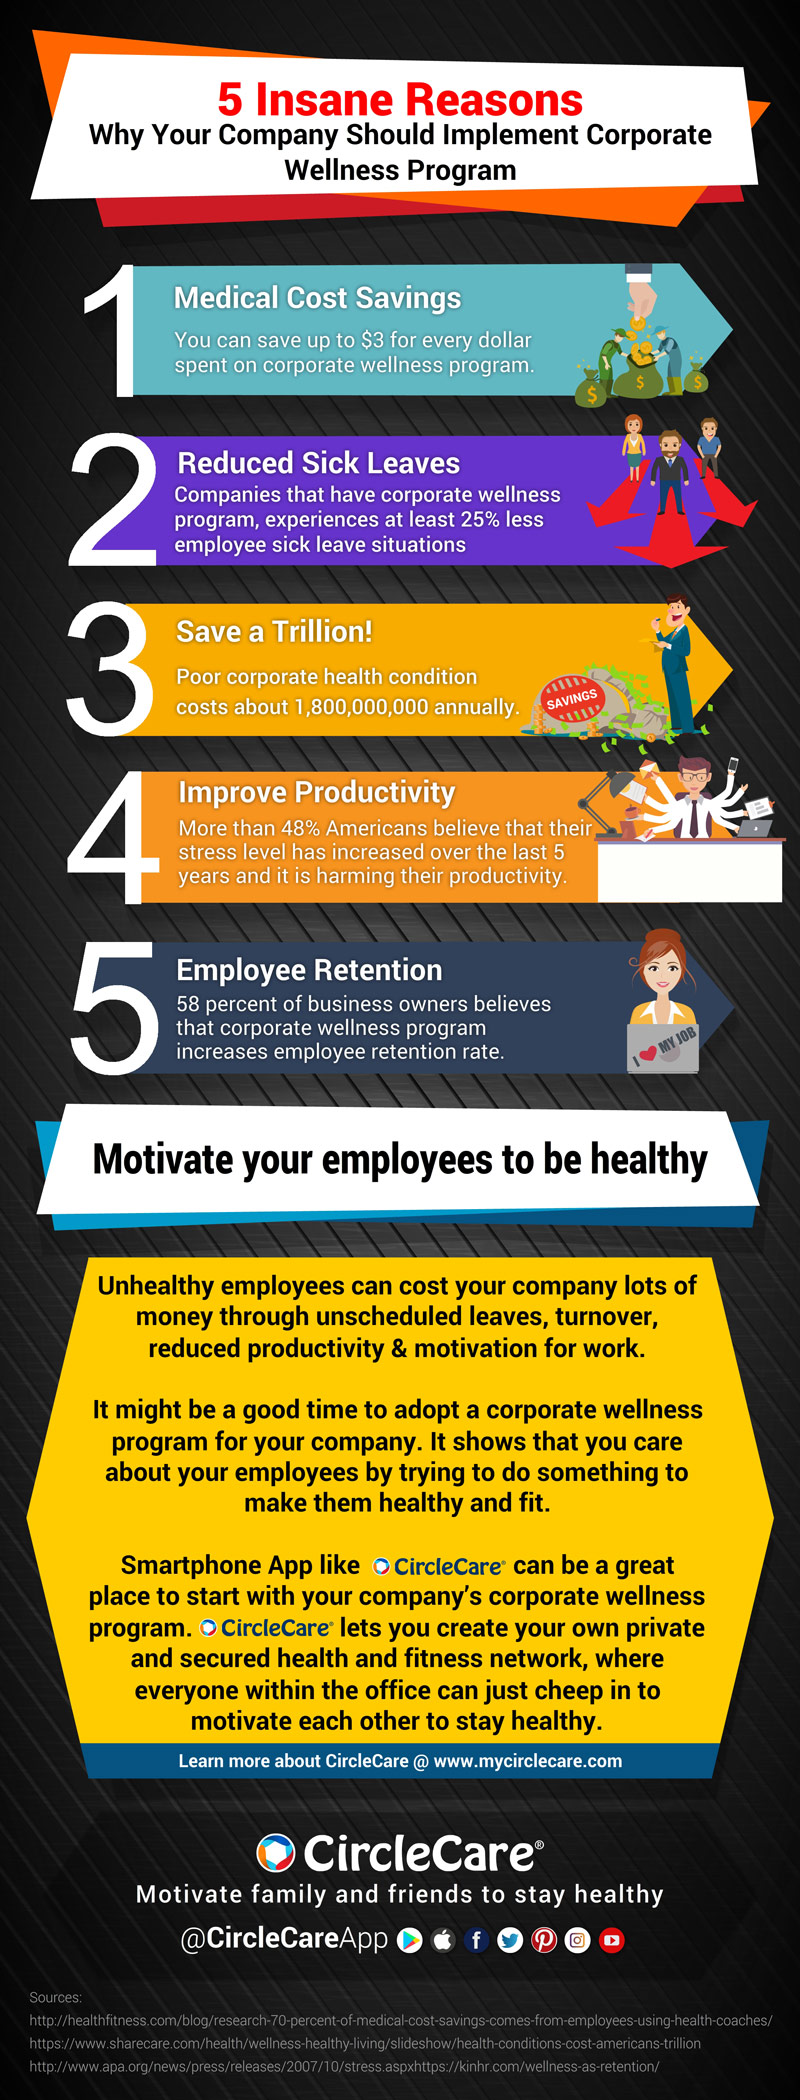 Info-graphics-10-Insane-Reasons-Why-Your-Company-Should-Implement-Corporate-Wellness-Program-CircleCare